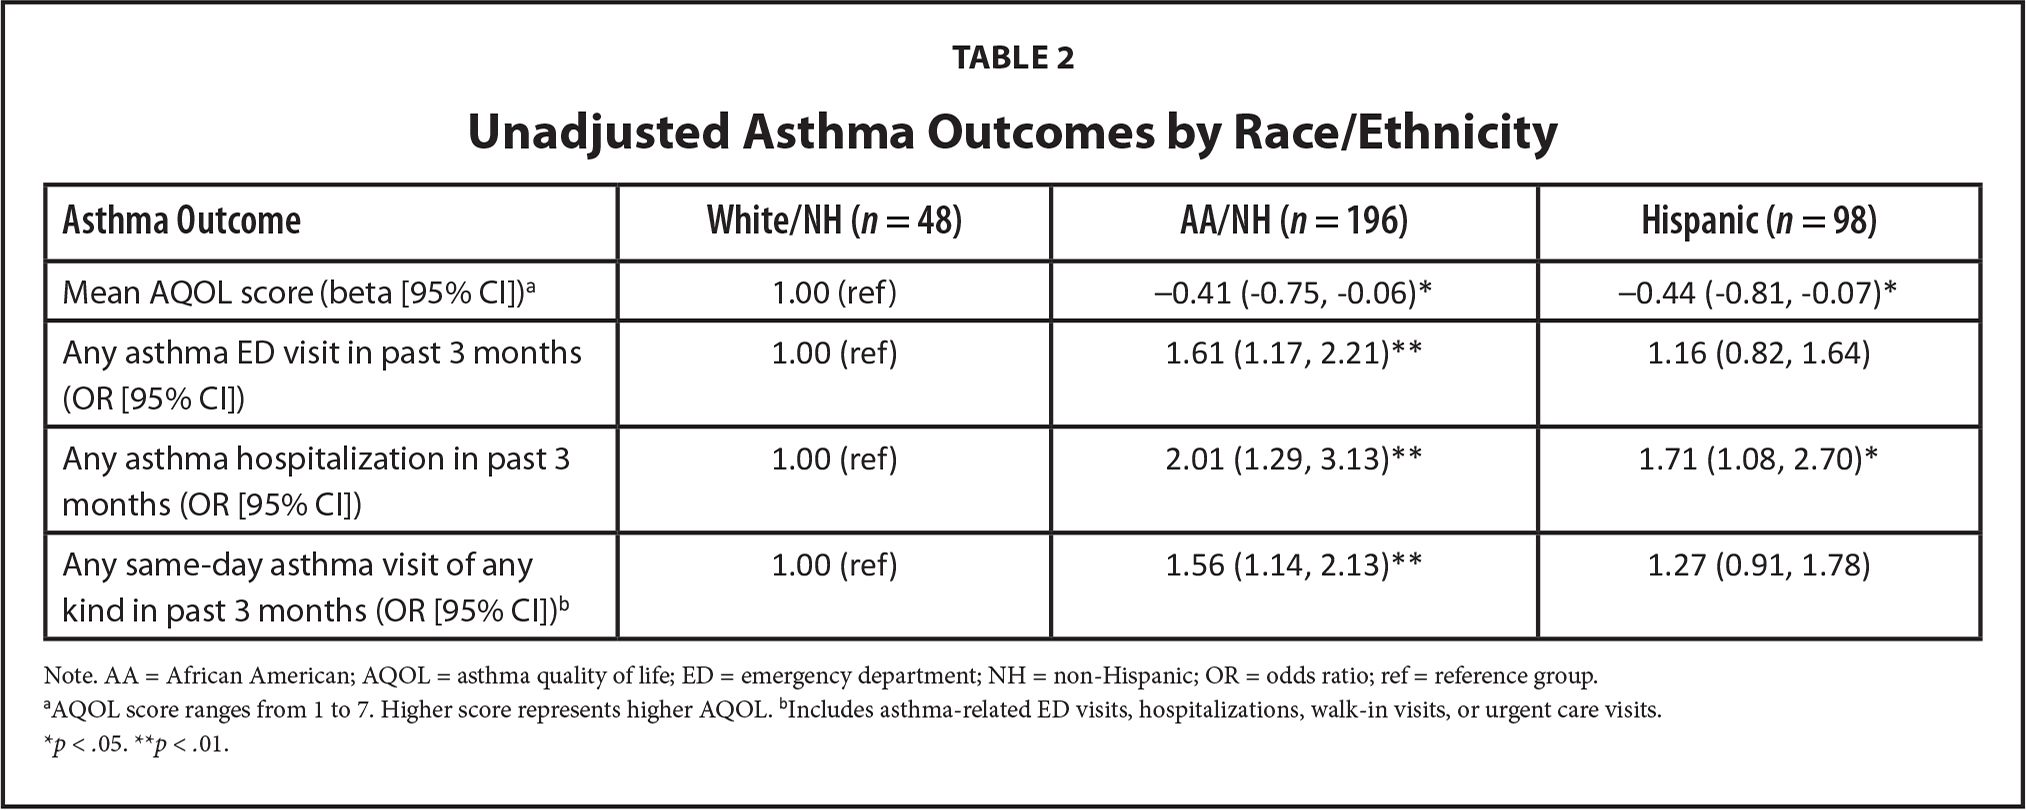 Unadjusted Asthma Outcomes by Race/Ethnicity